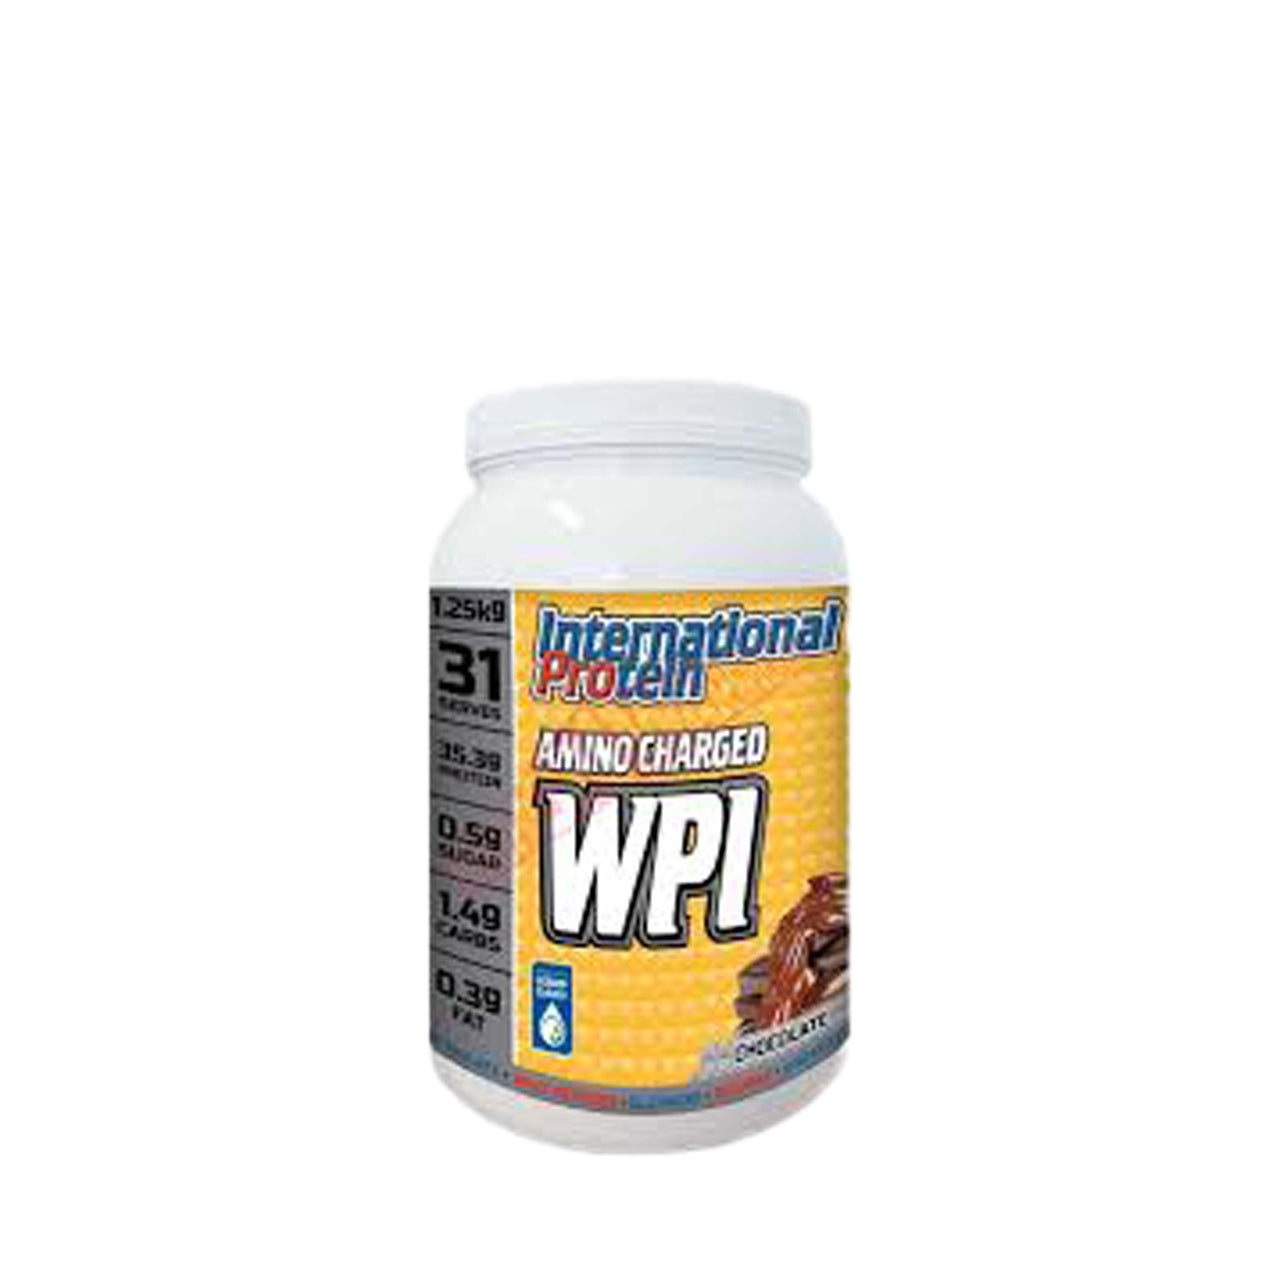 International Protein Amino Charged WPI 1.25KG - Nutrition Co Australia